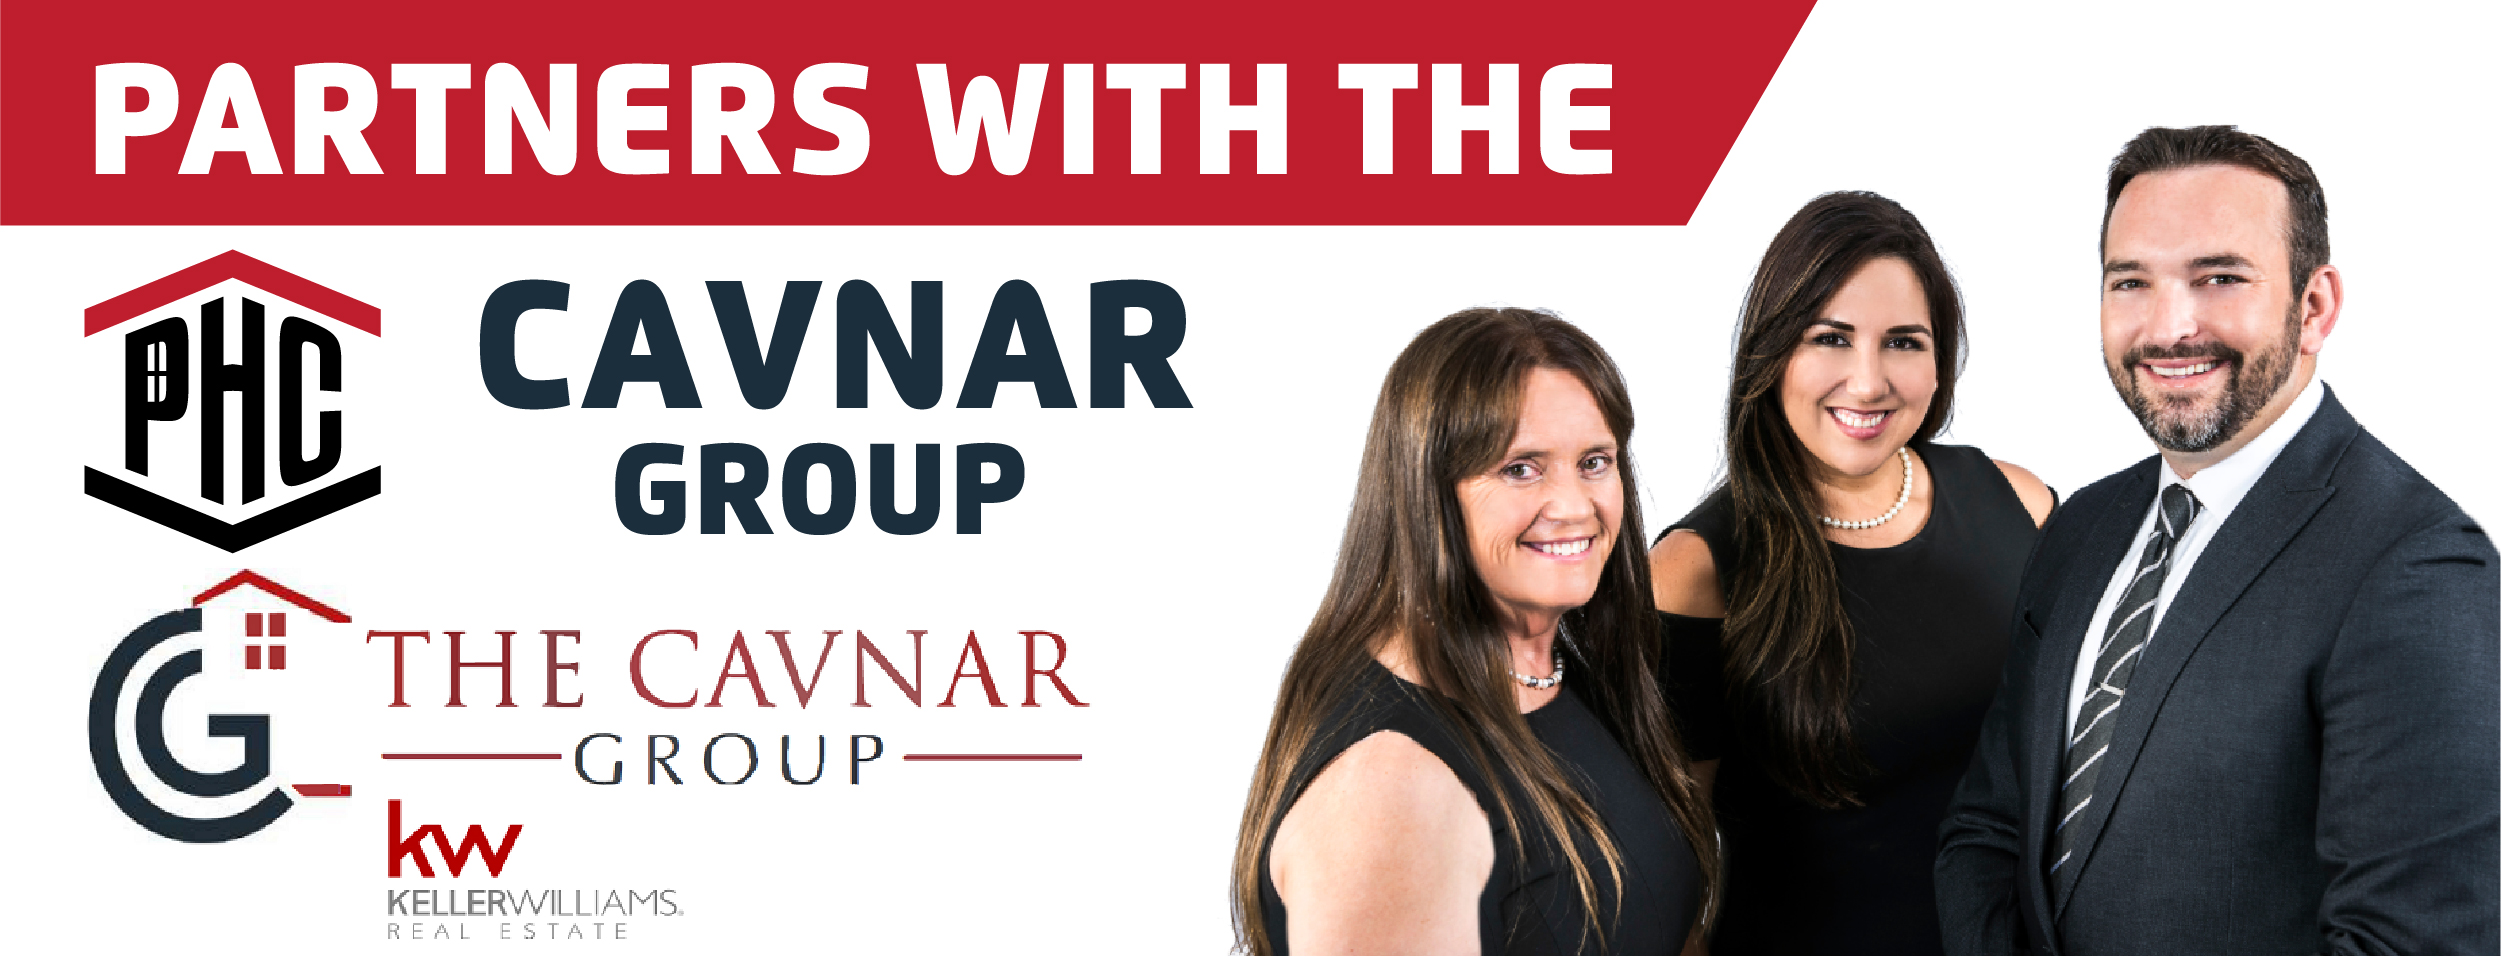 Partners With The Cavnar Group